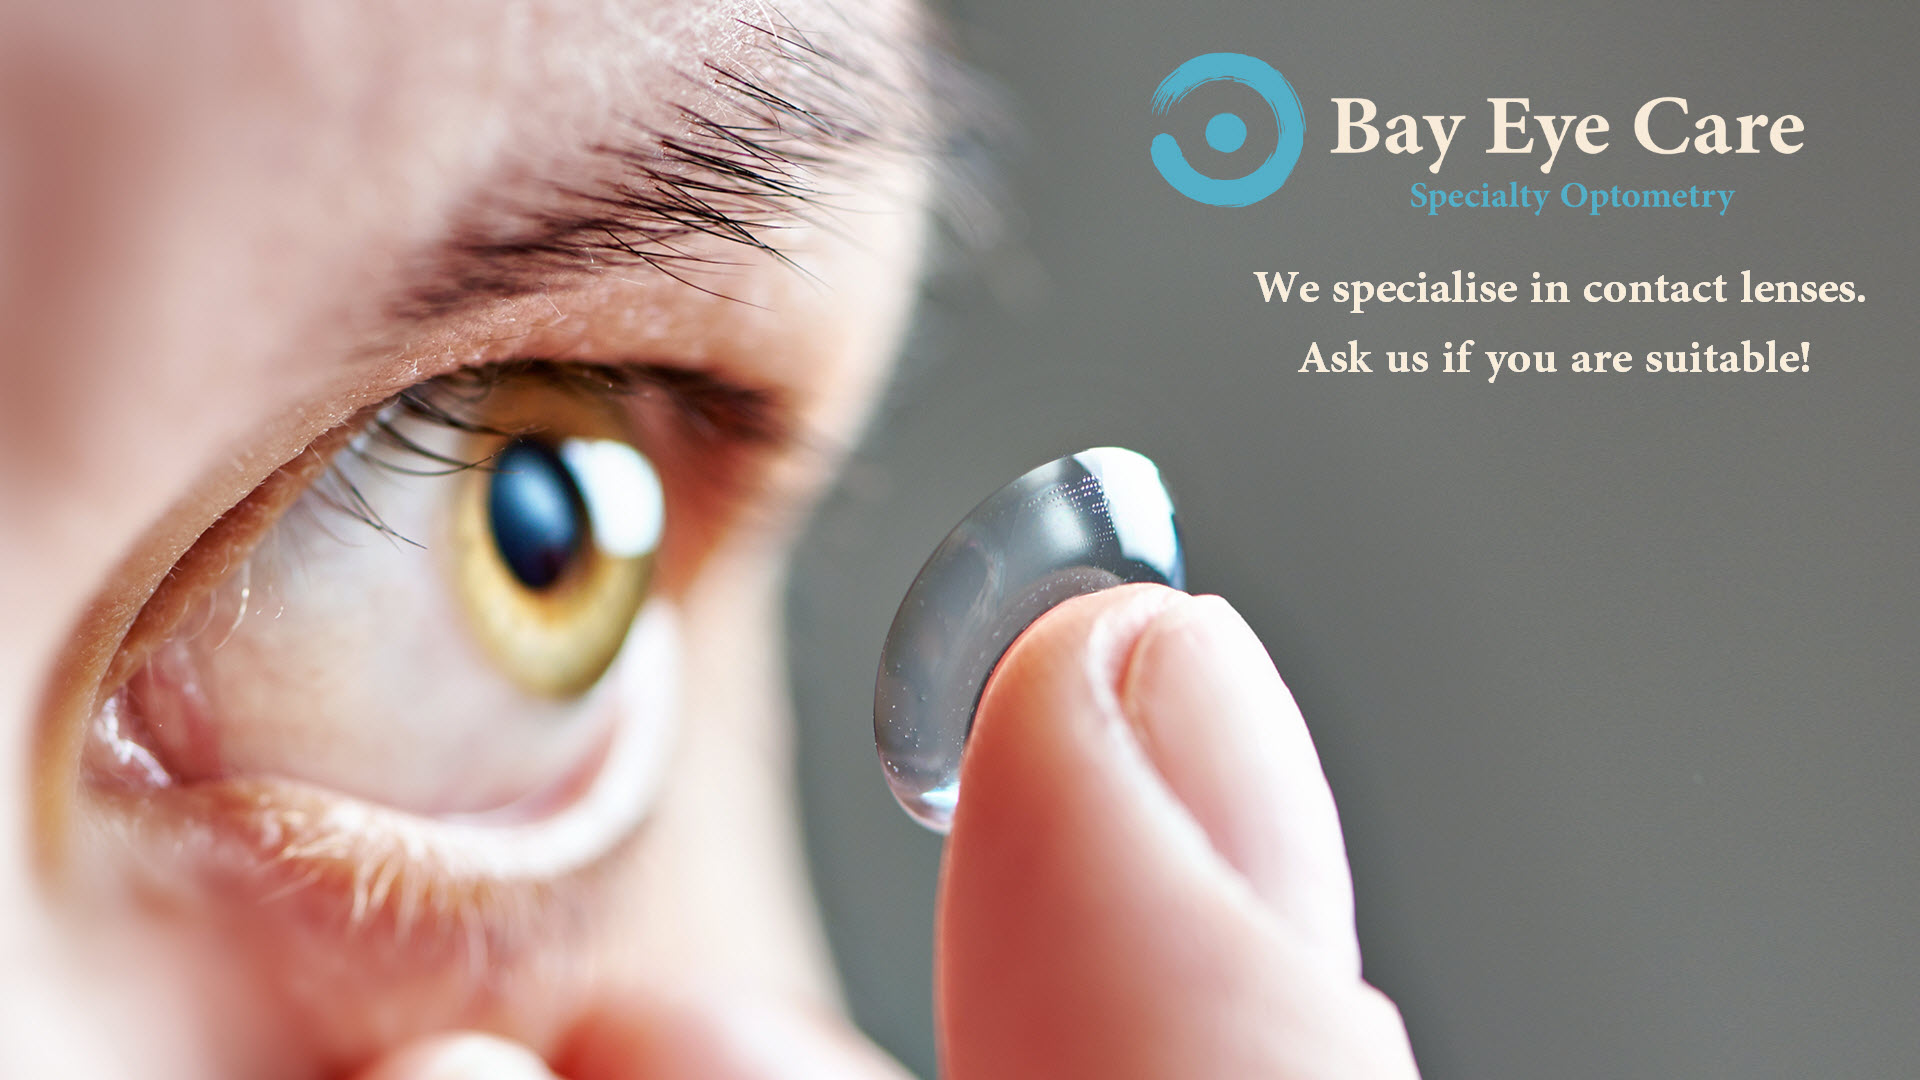 Bay Eye Care Contact Lenses